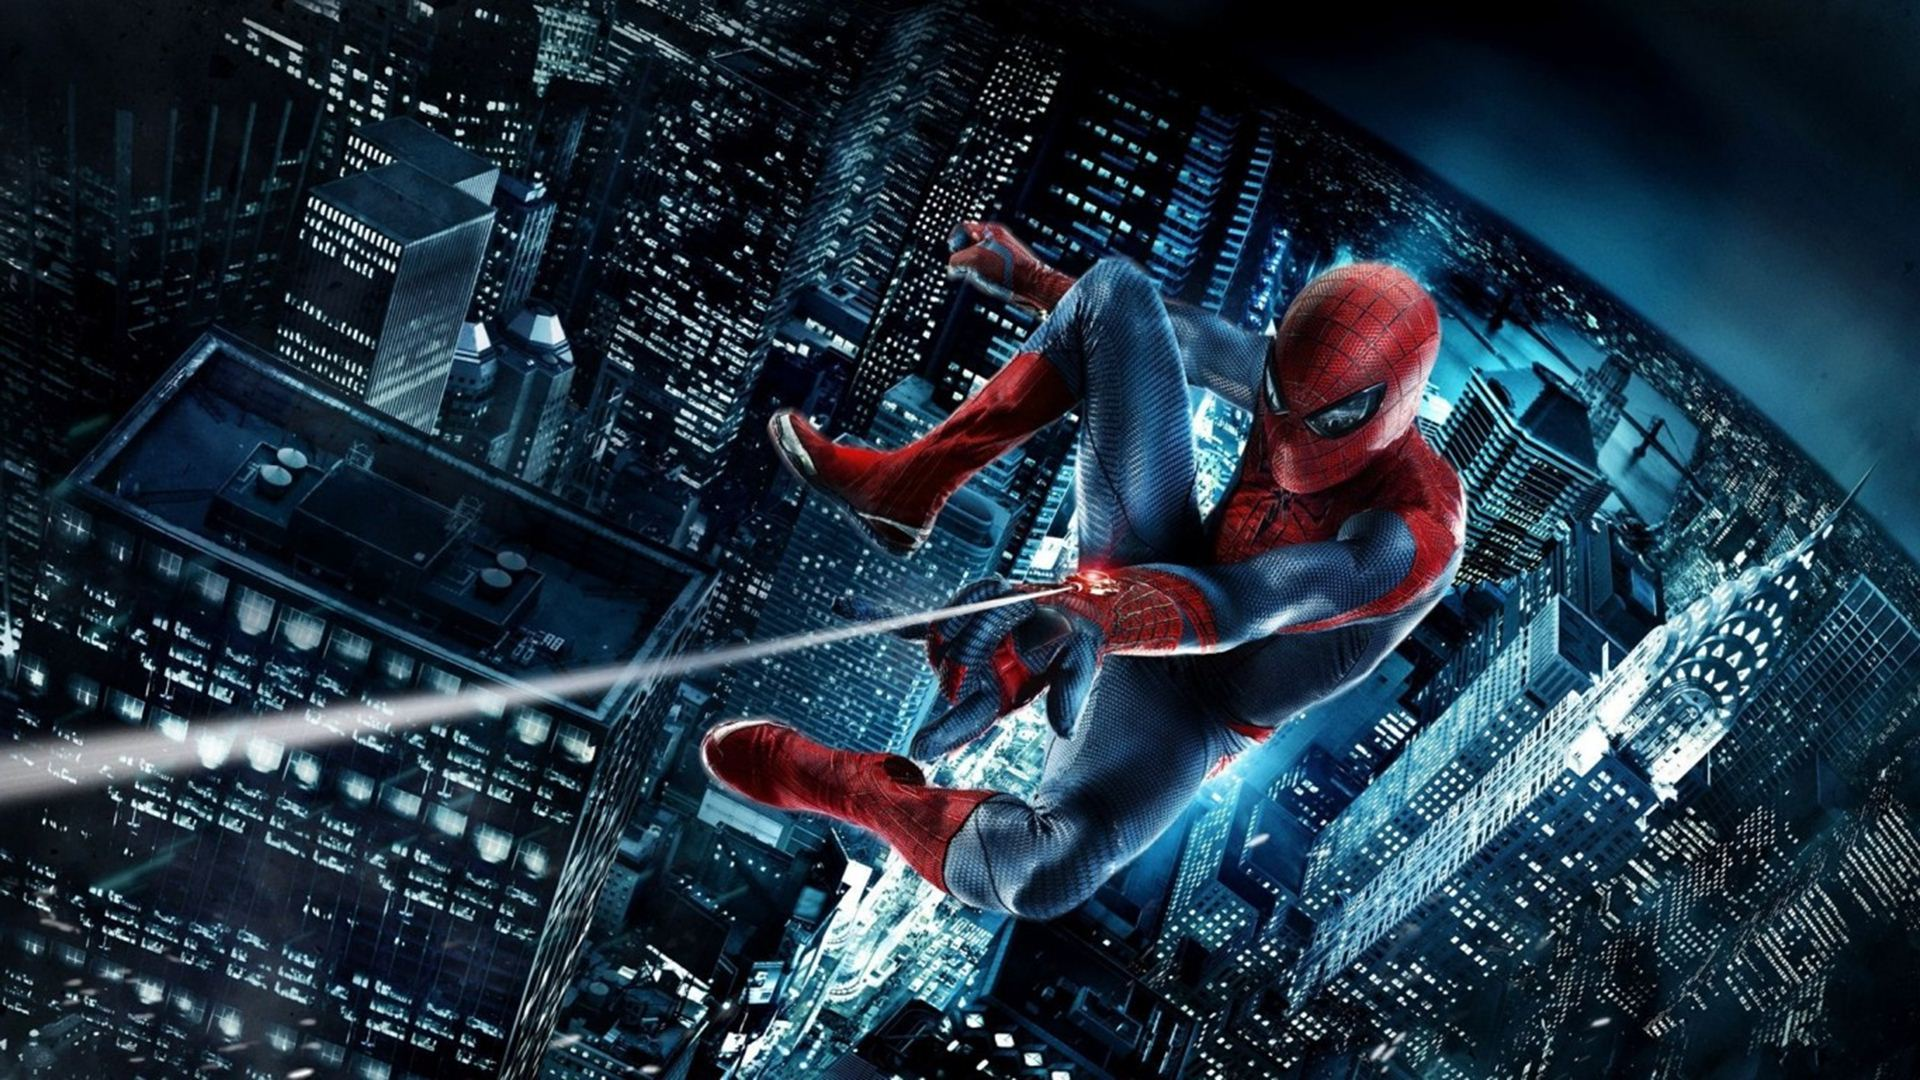 The Amazing Spider Man 2 Wallpapers (44 Wallpapers ...